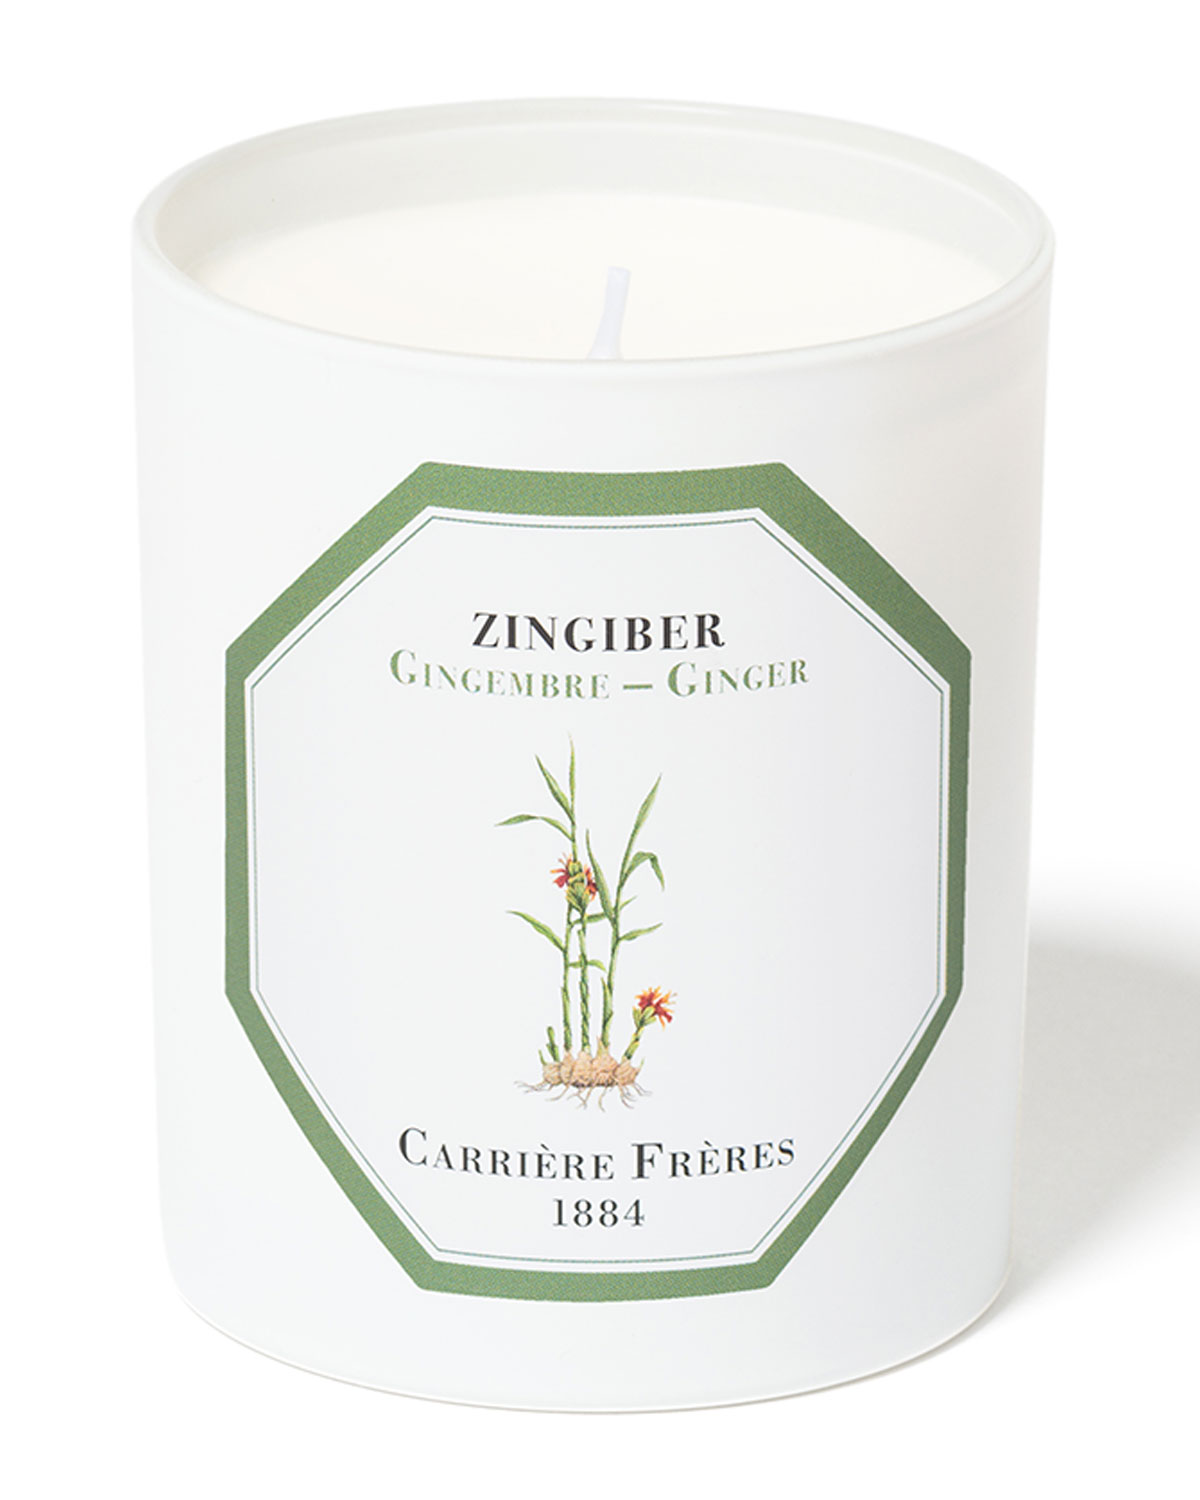 6.5 oz. Ginger Candle